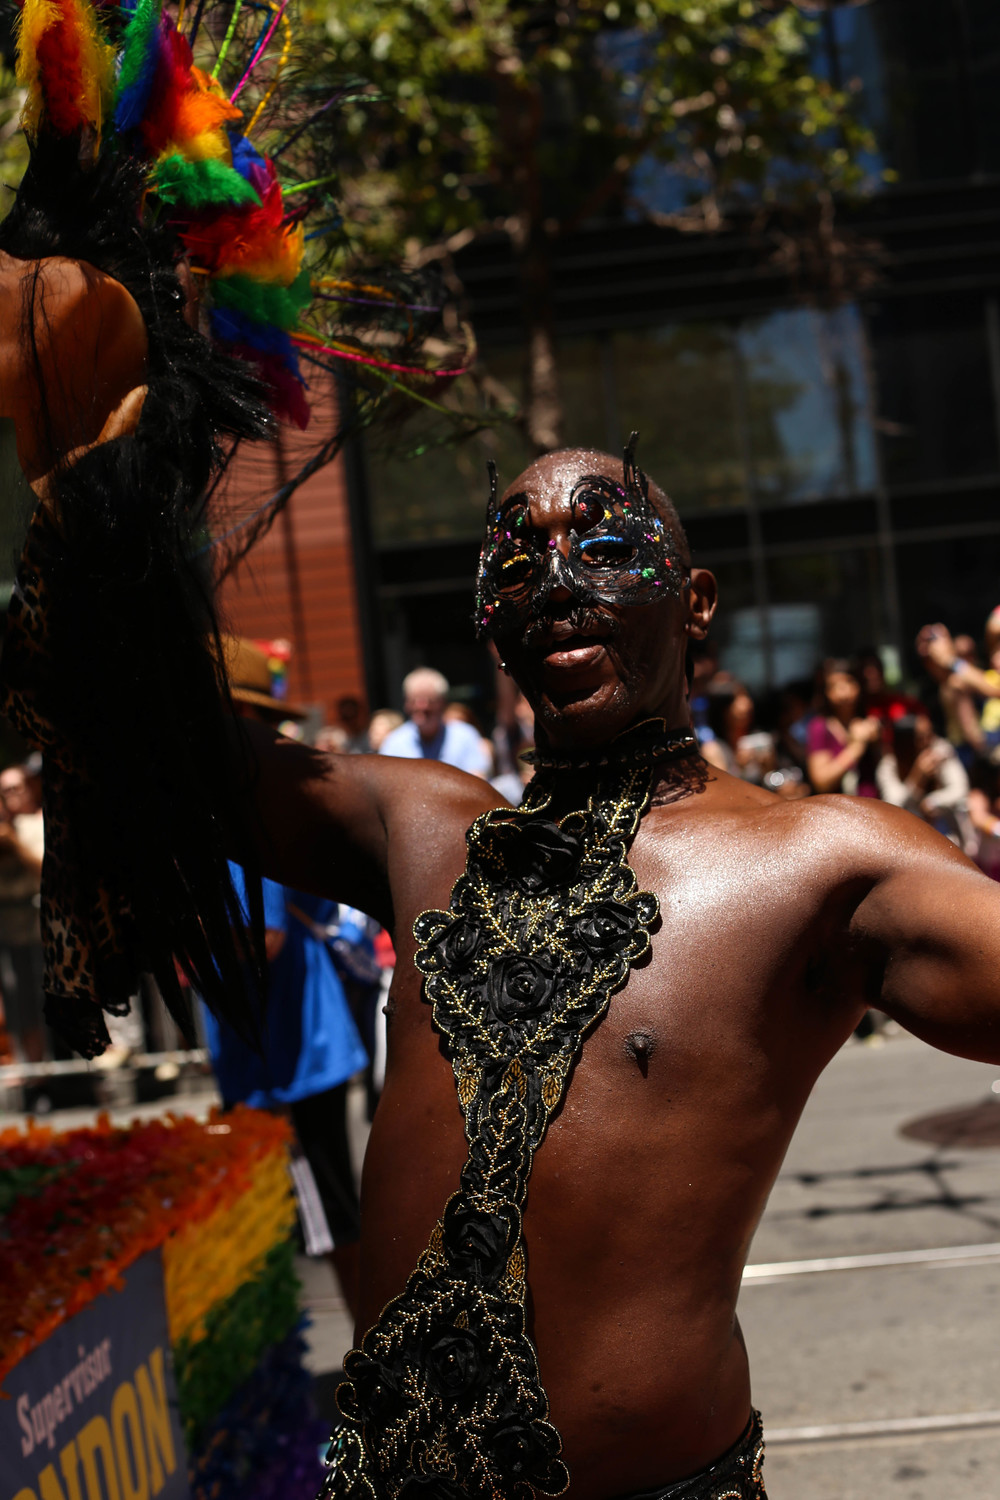 Parader poses during the San Francisco Pride Parade on Sunday, June 26, 2016.